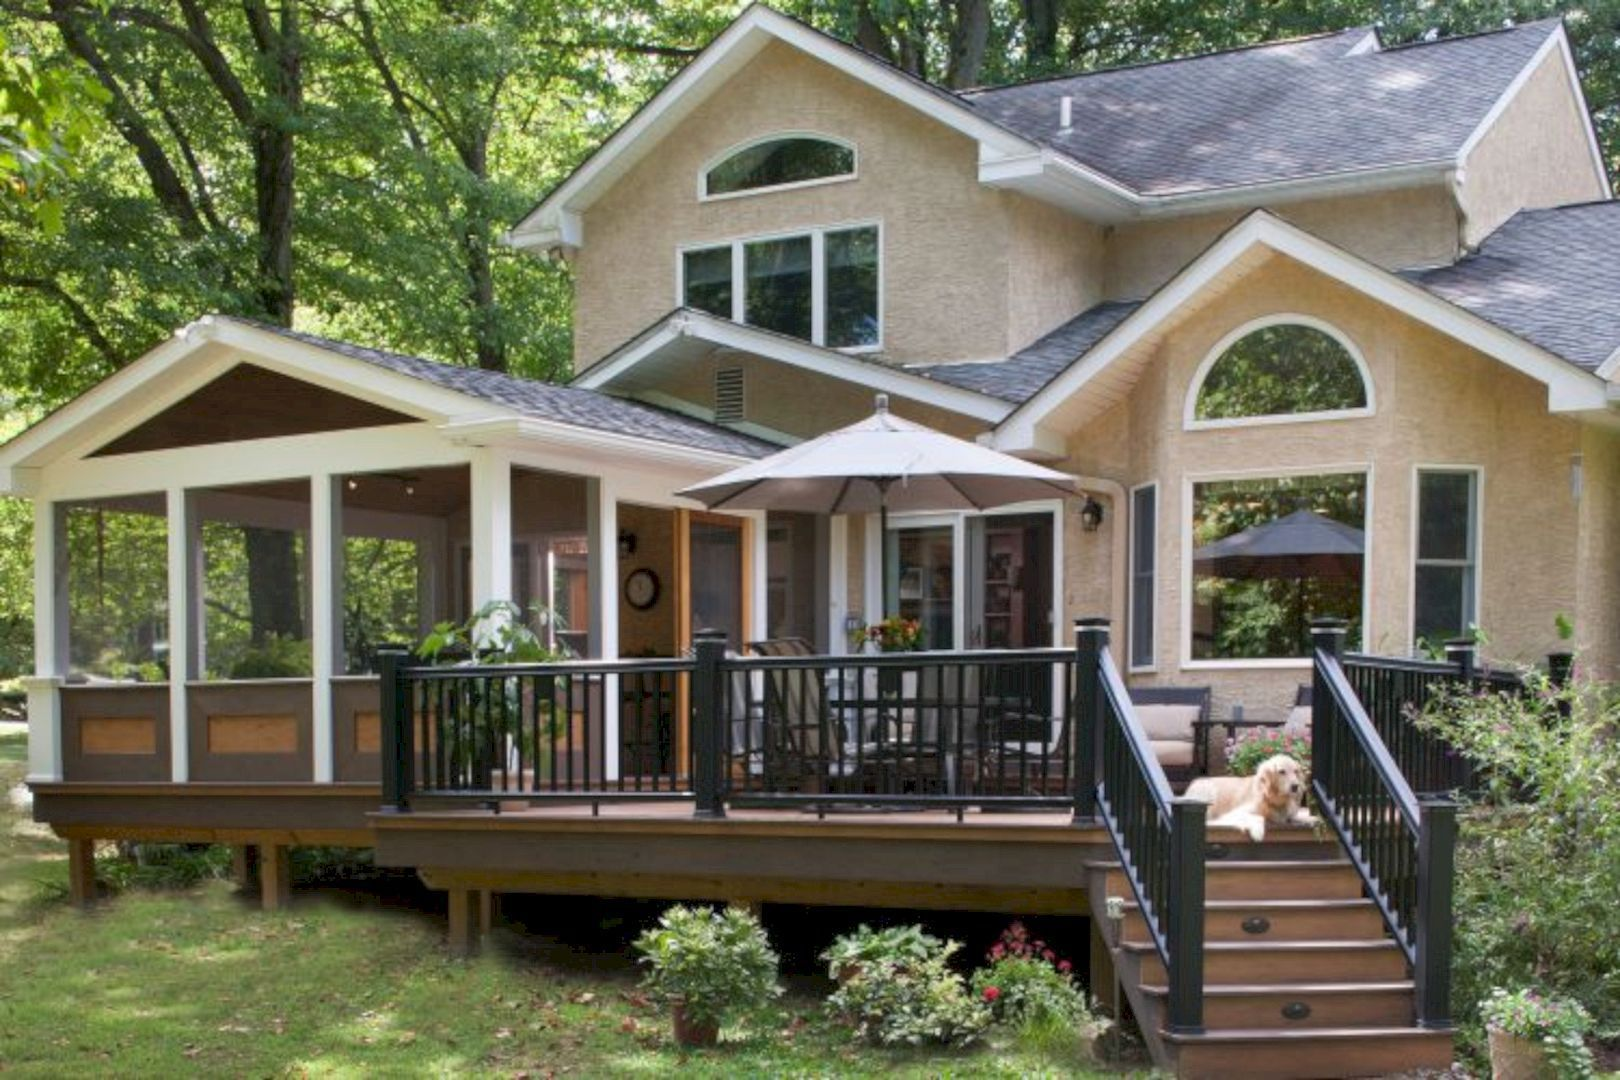 8 Ways To Have More Appealing Screened Porch Deck Screened Porch Designs Porch Design Decks And Porches